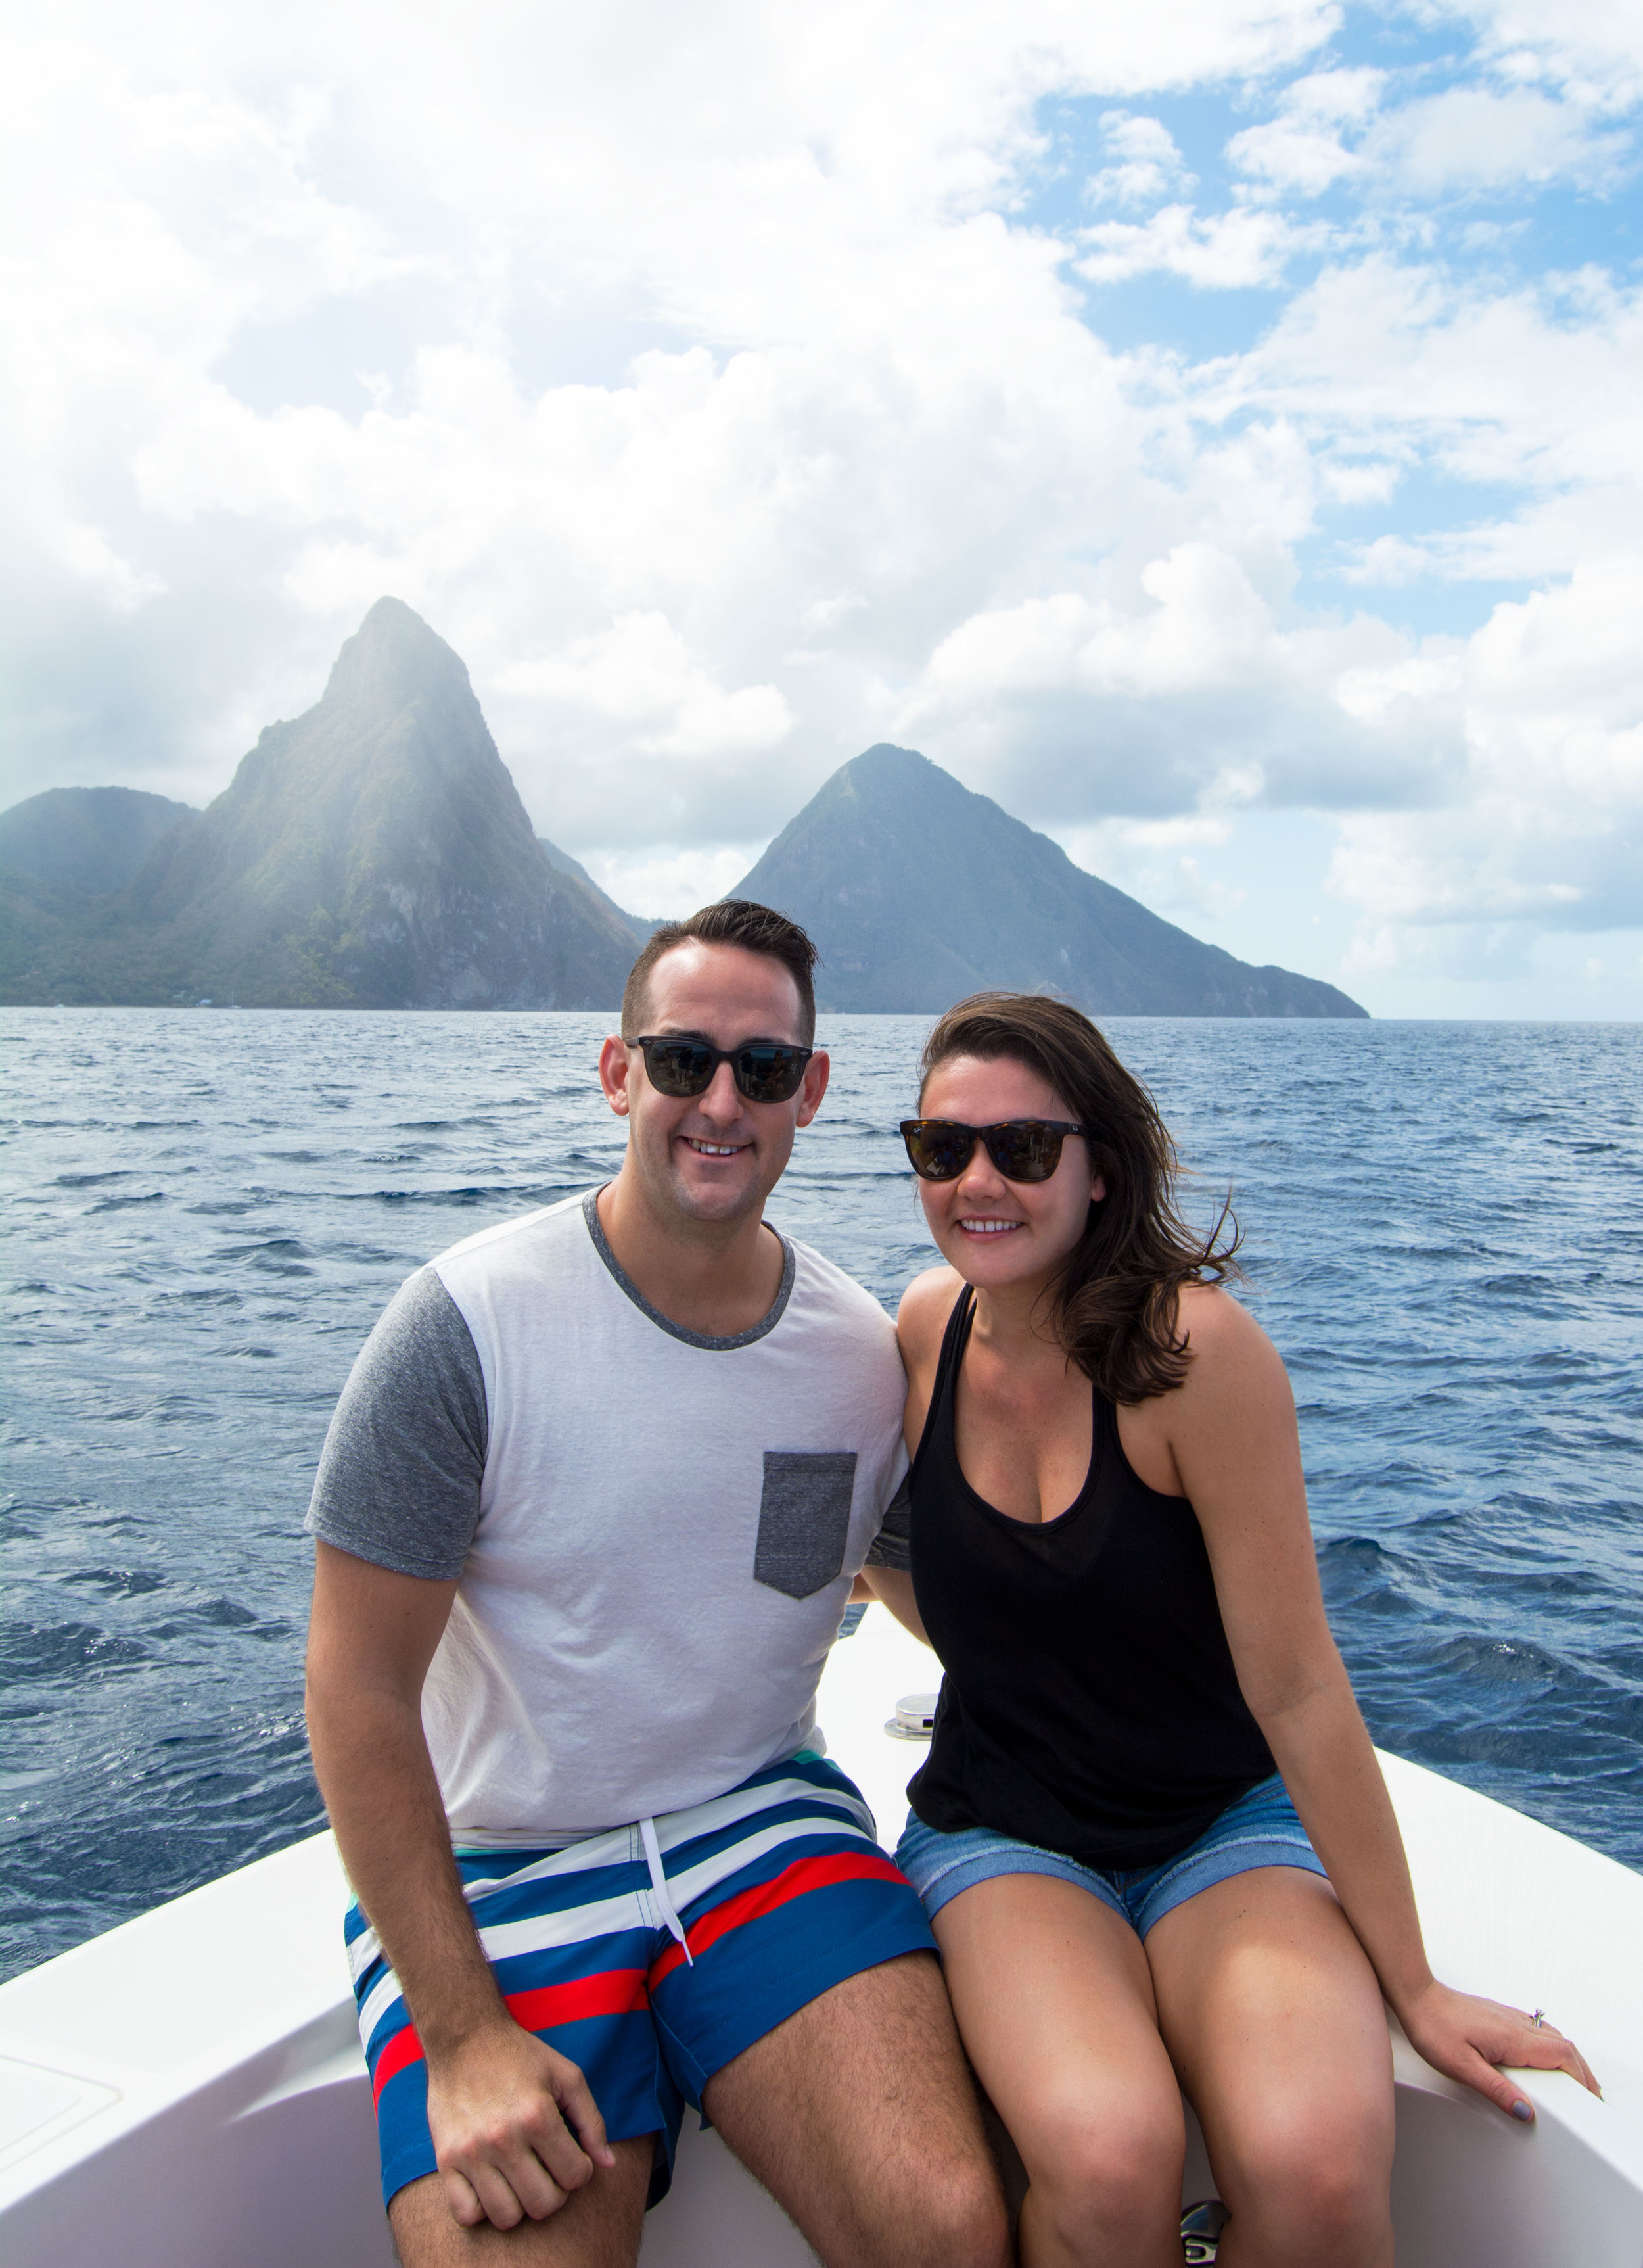 Behind us are the Pitons; The Gros Piton is 2,530 ft high, and the is 2,438 ft high.